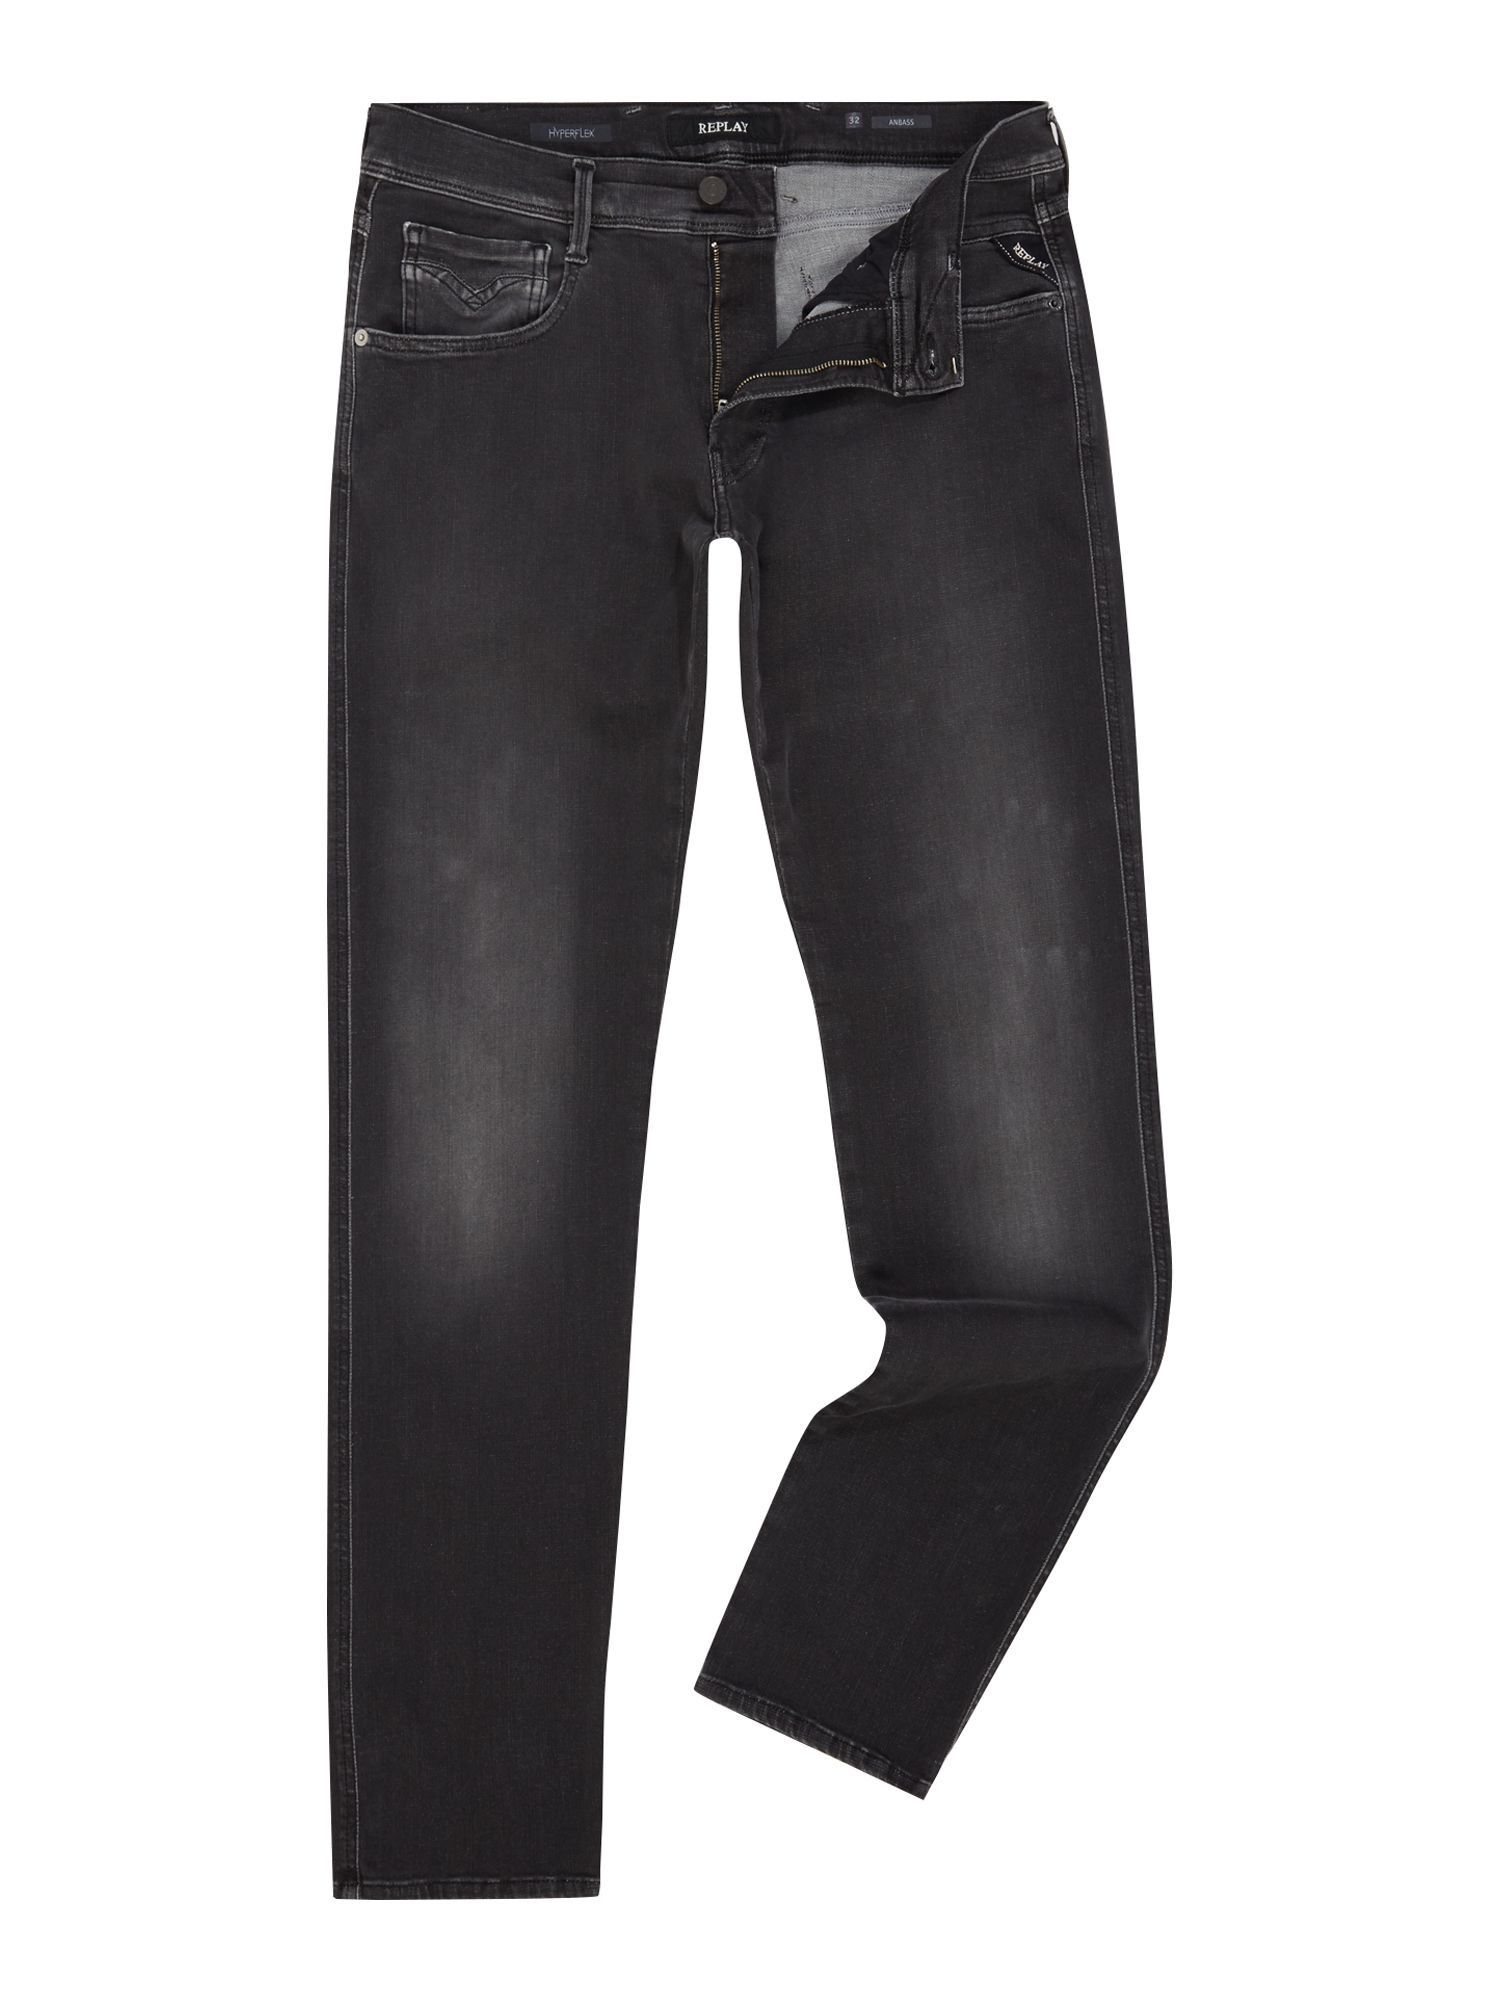 Mens Anbass Slim Fit Jeans, Nearly Black